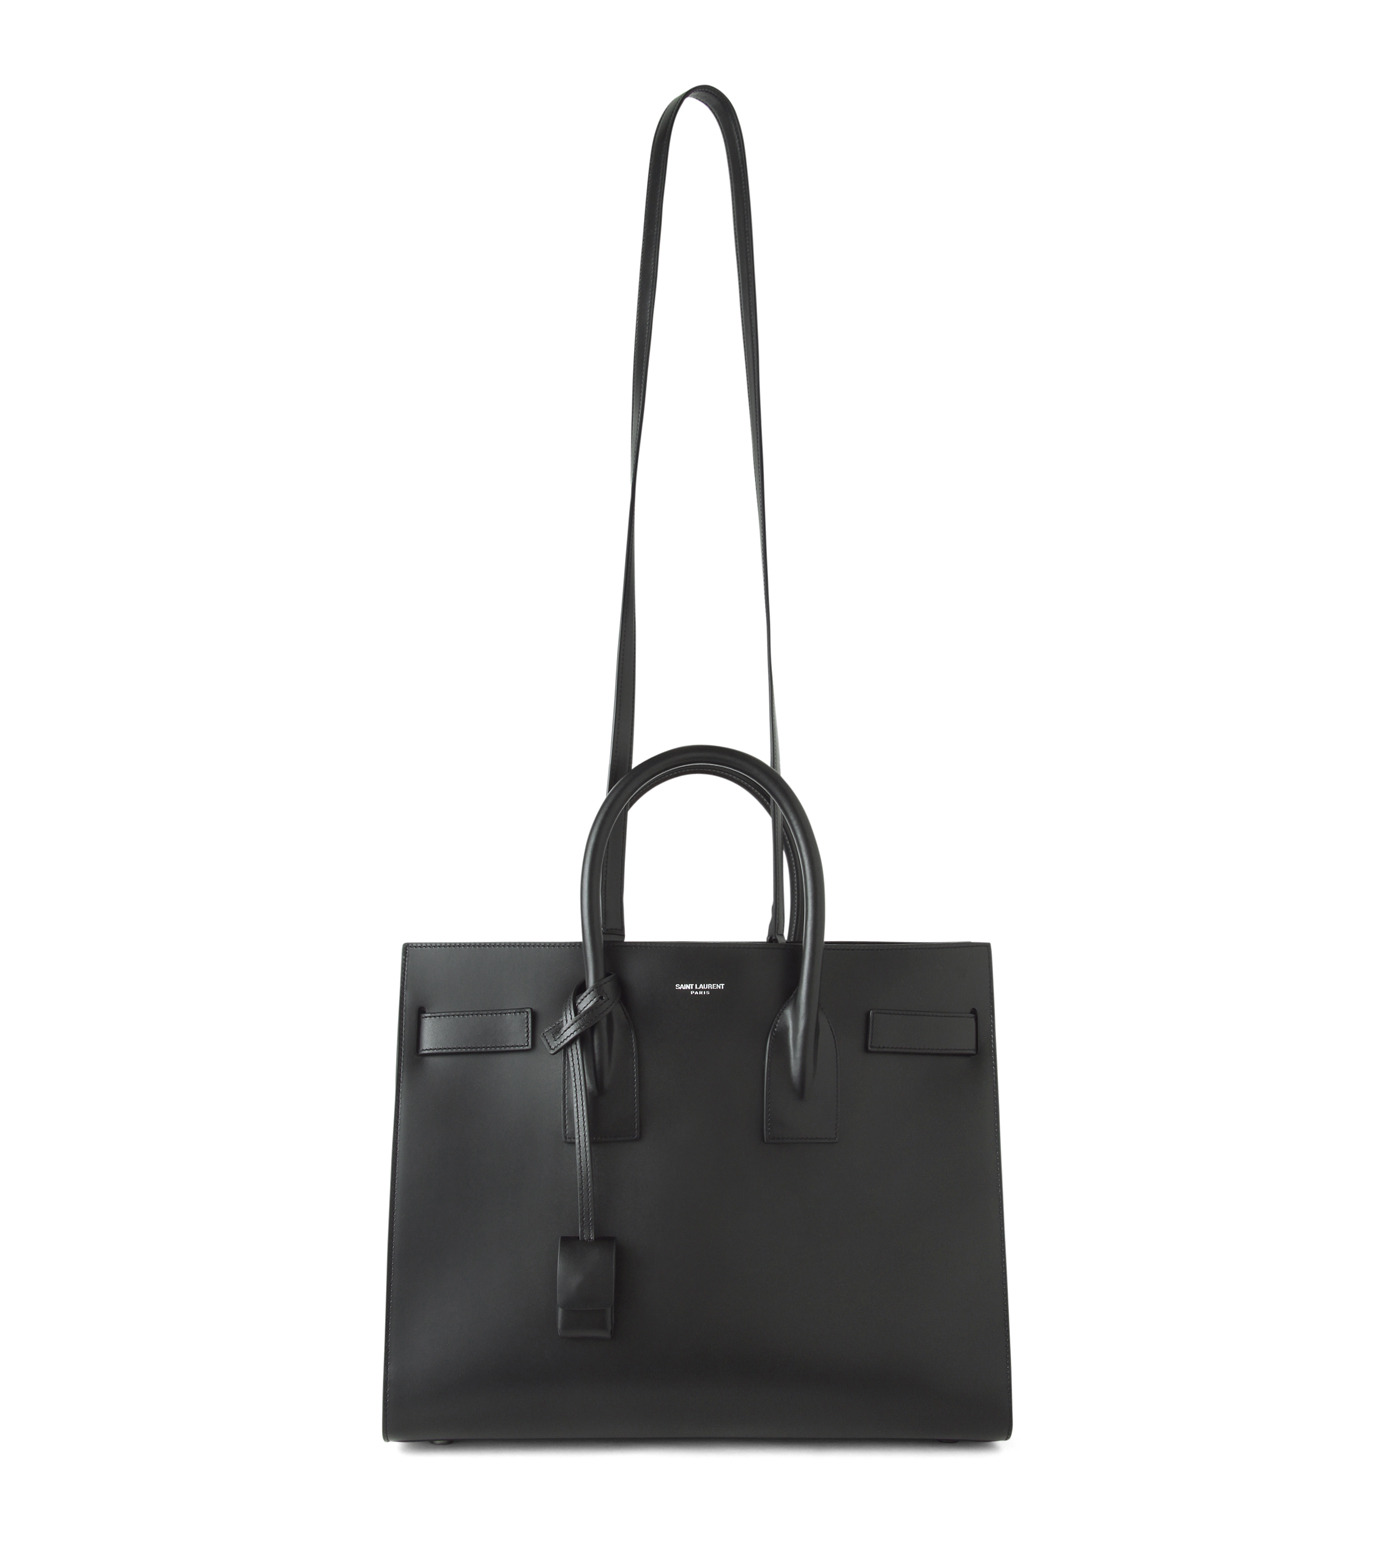 SAINT LAURENT(サンローラン)のSac de Jour Small Double Face-BLACK(ハンドバッグ/hand bag)-378299-BX62V-13 拡大詳細画像1